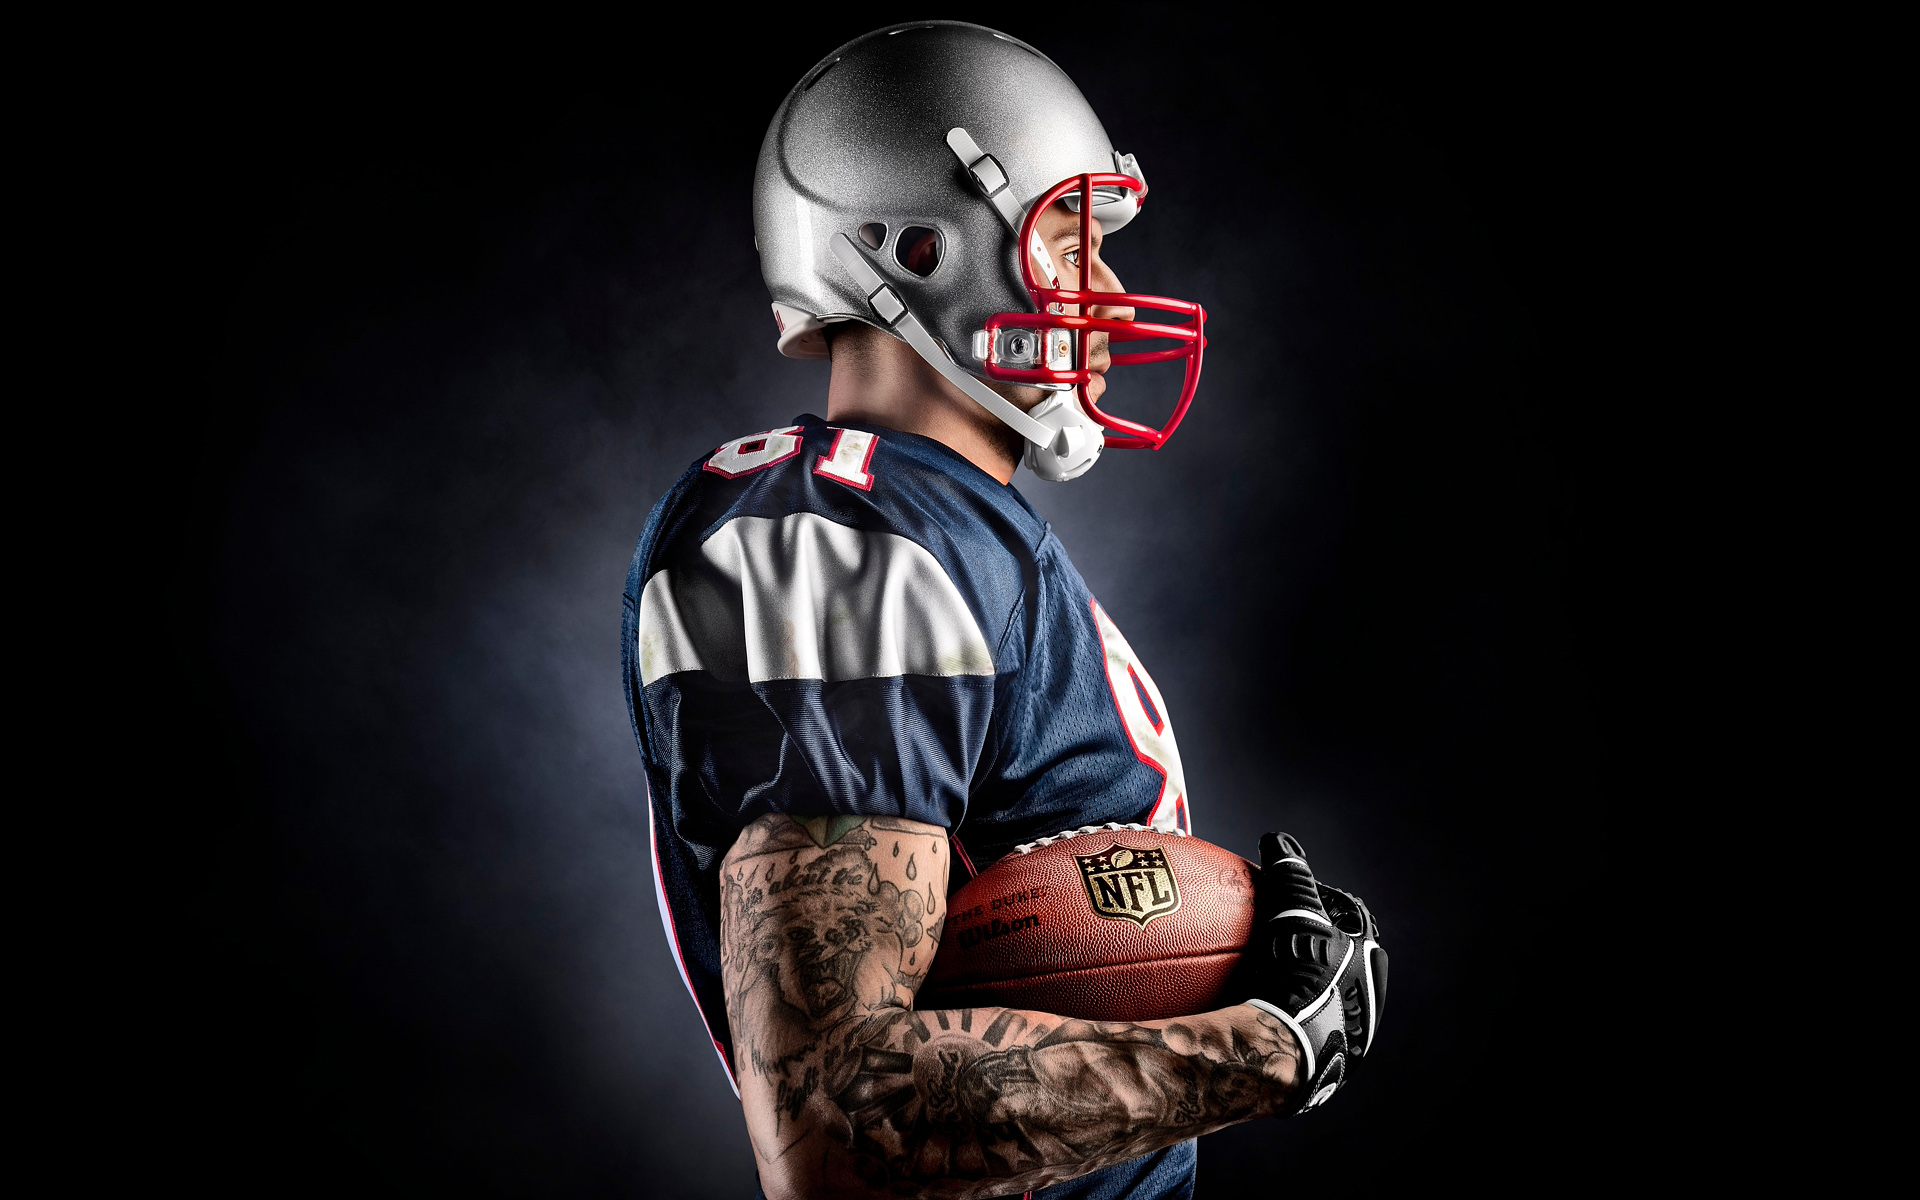 Aaron Hernandez photoshoot by Blair Bunting